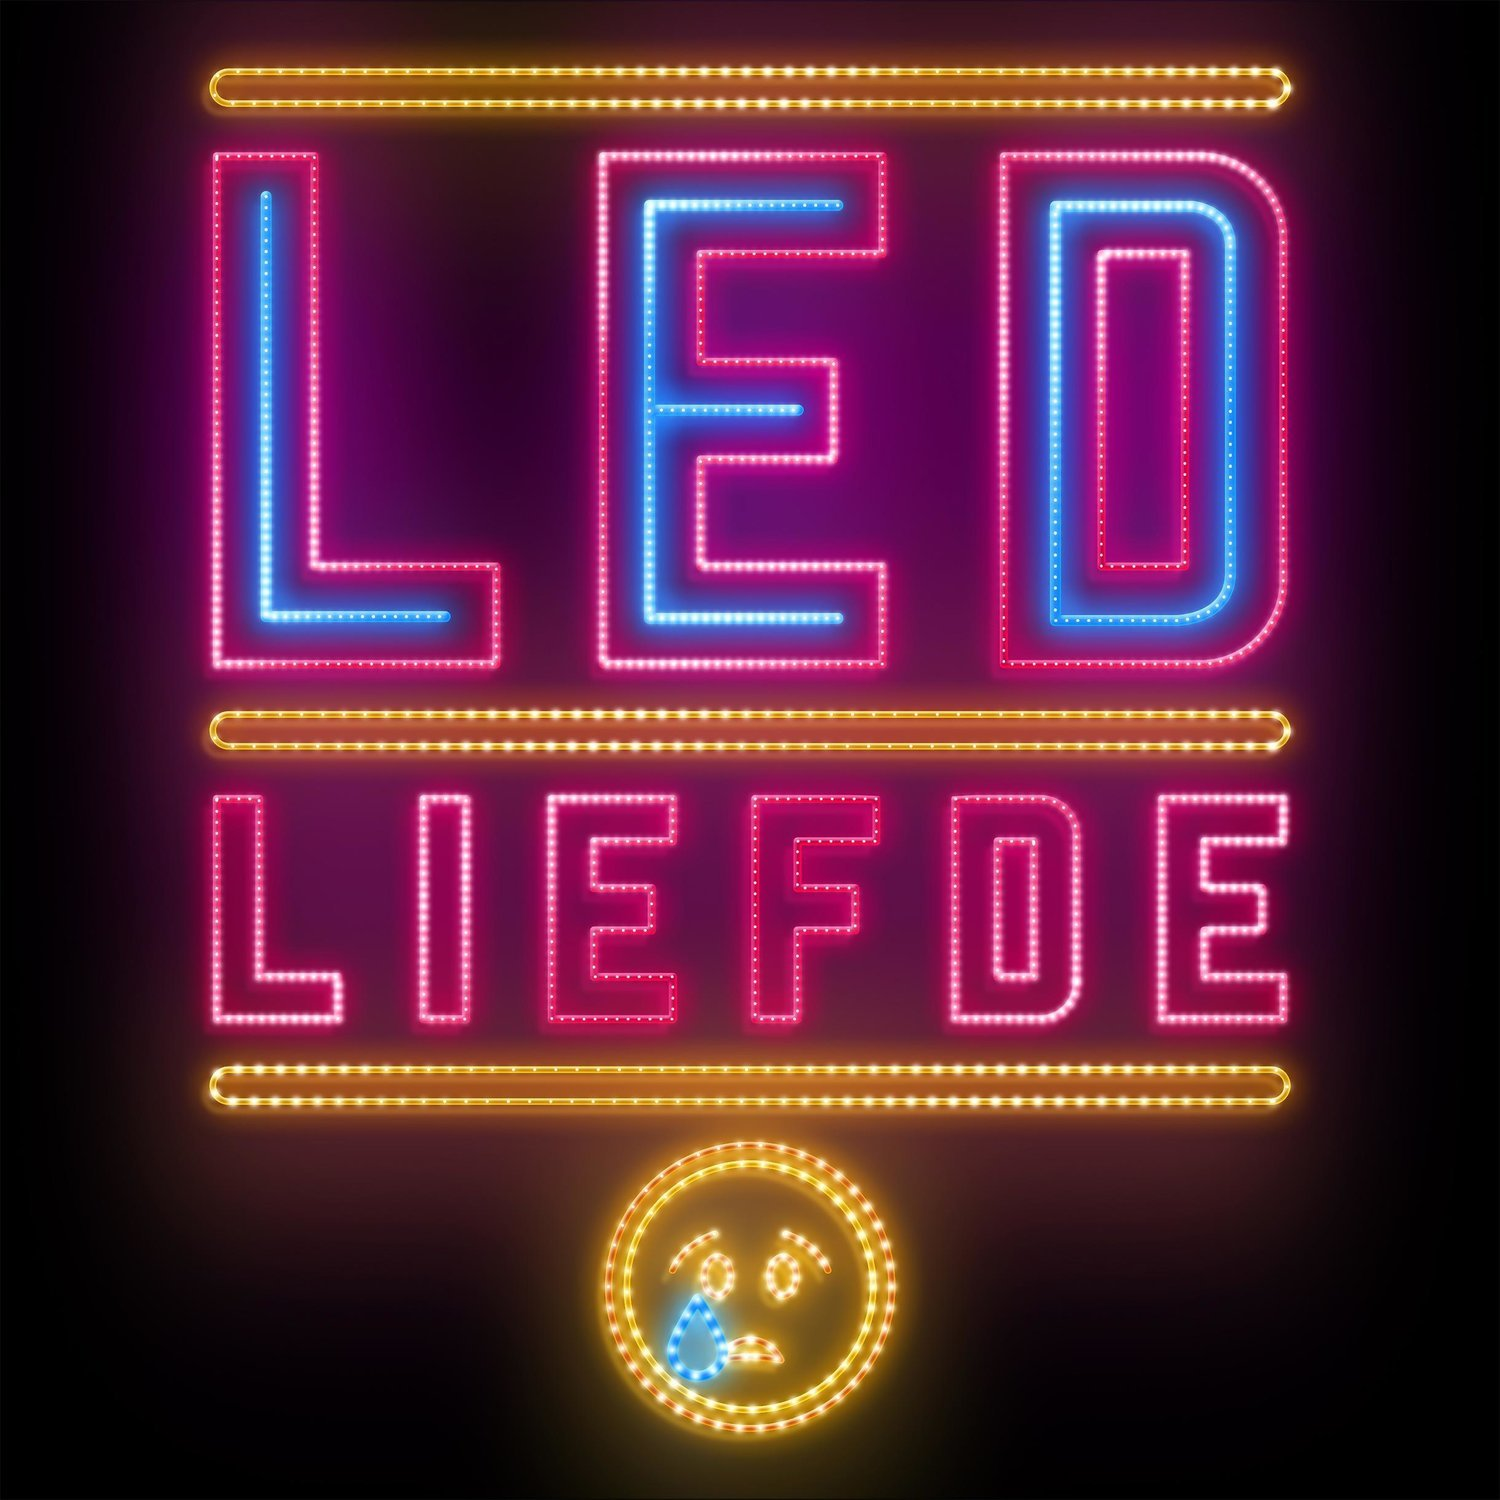 LED Liefde |Digital Single  (2016)